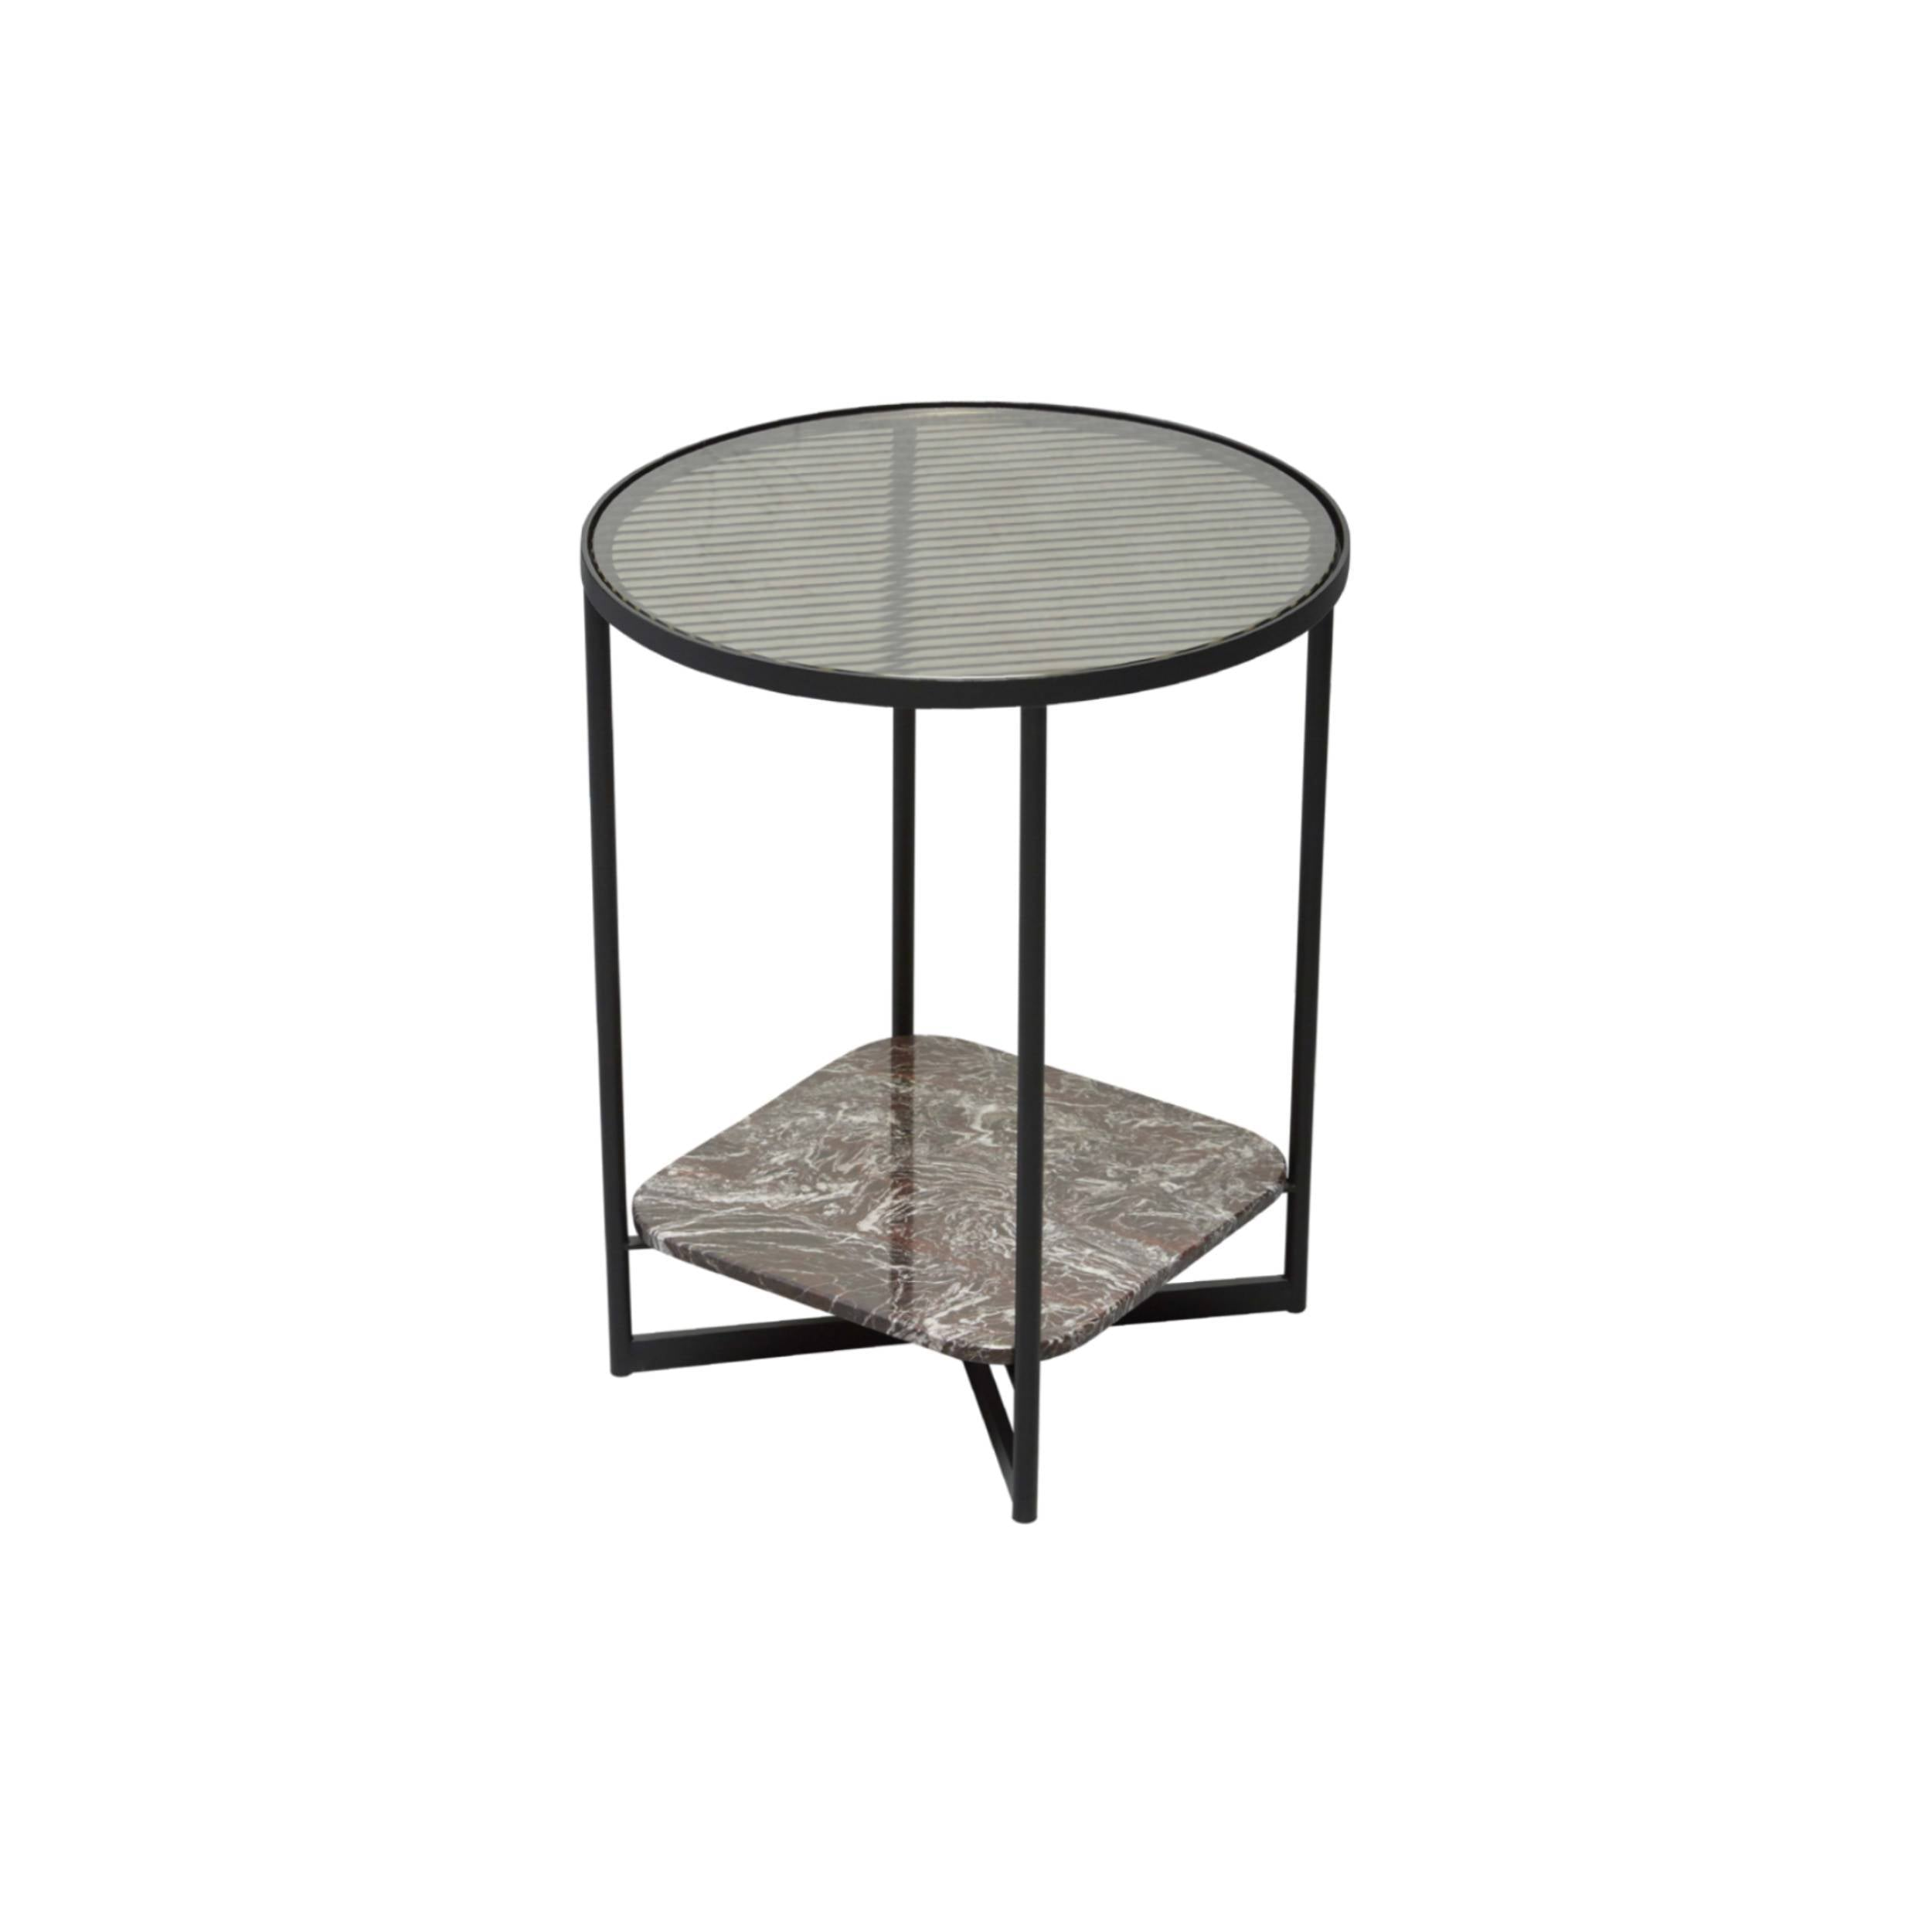 Mohana Side Table Small: Black + Fluted Glass + Rose Marble